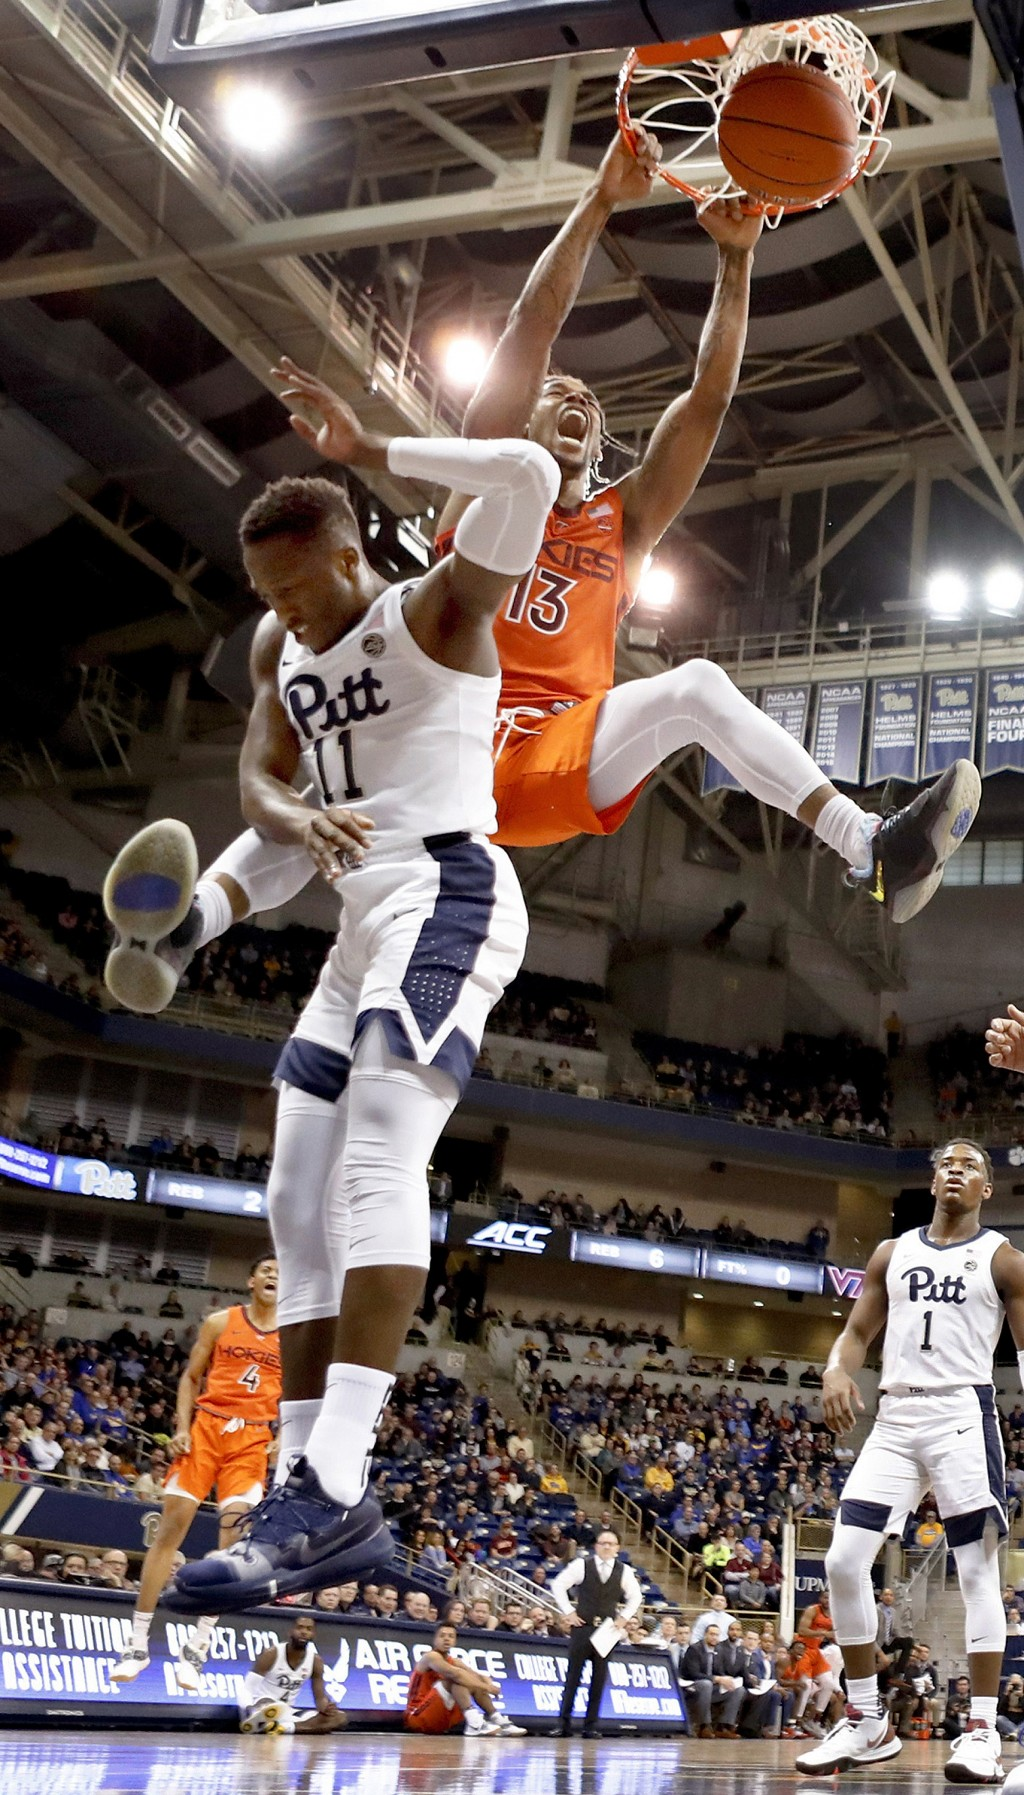 Virginia Tech's Ahmed Hill, right, dunks behind Pittsburgh's Sidy N'Dir (11) during the first half of an NCAA college basketball game, Saturday, Feb. ...